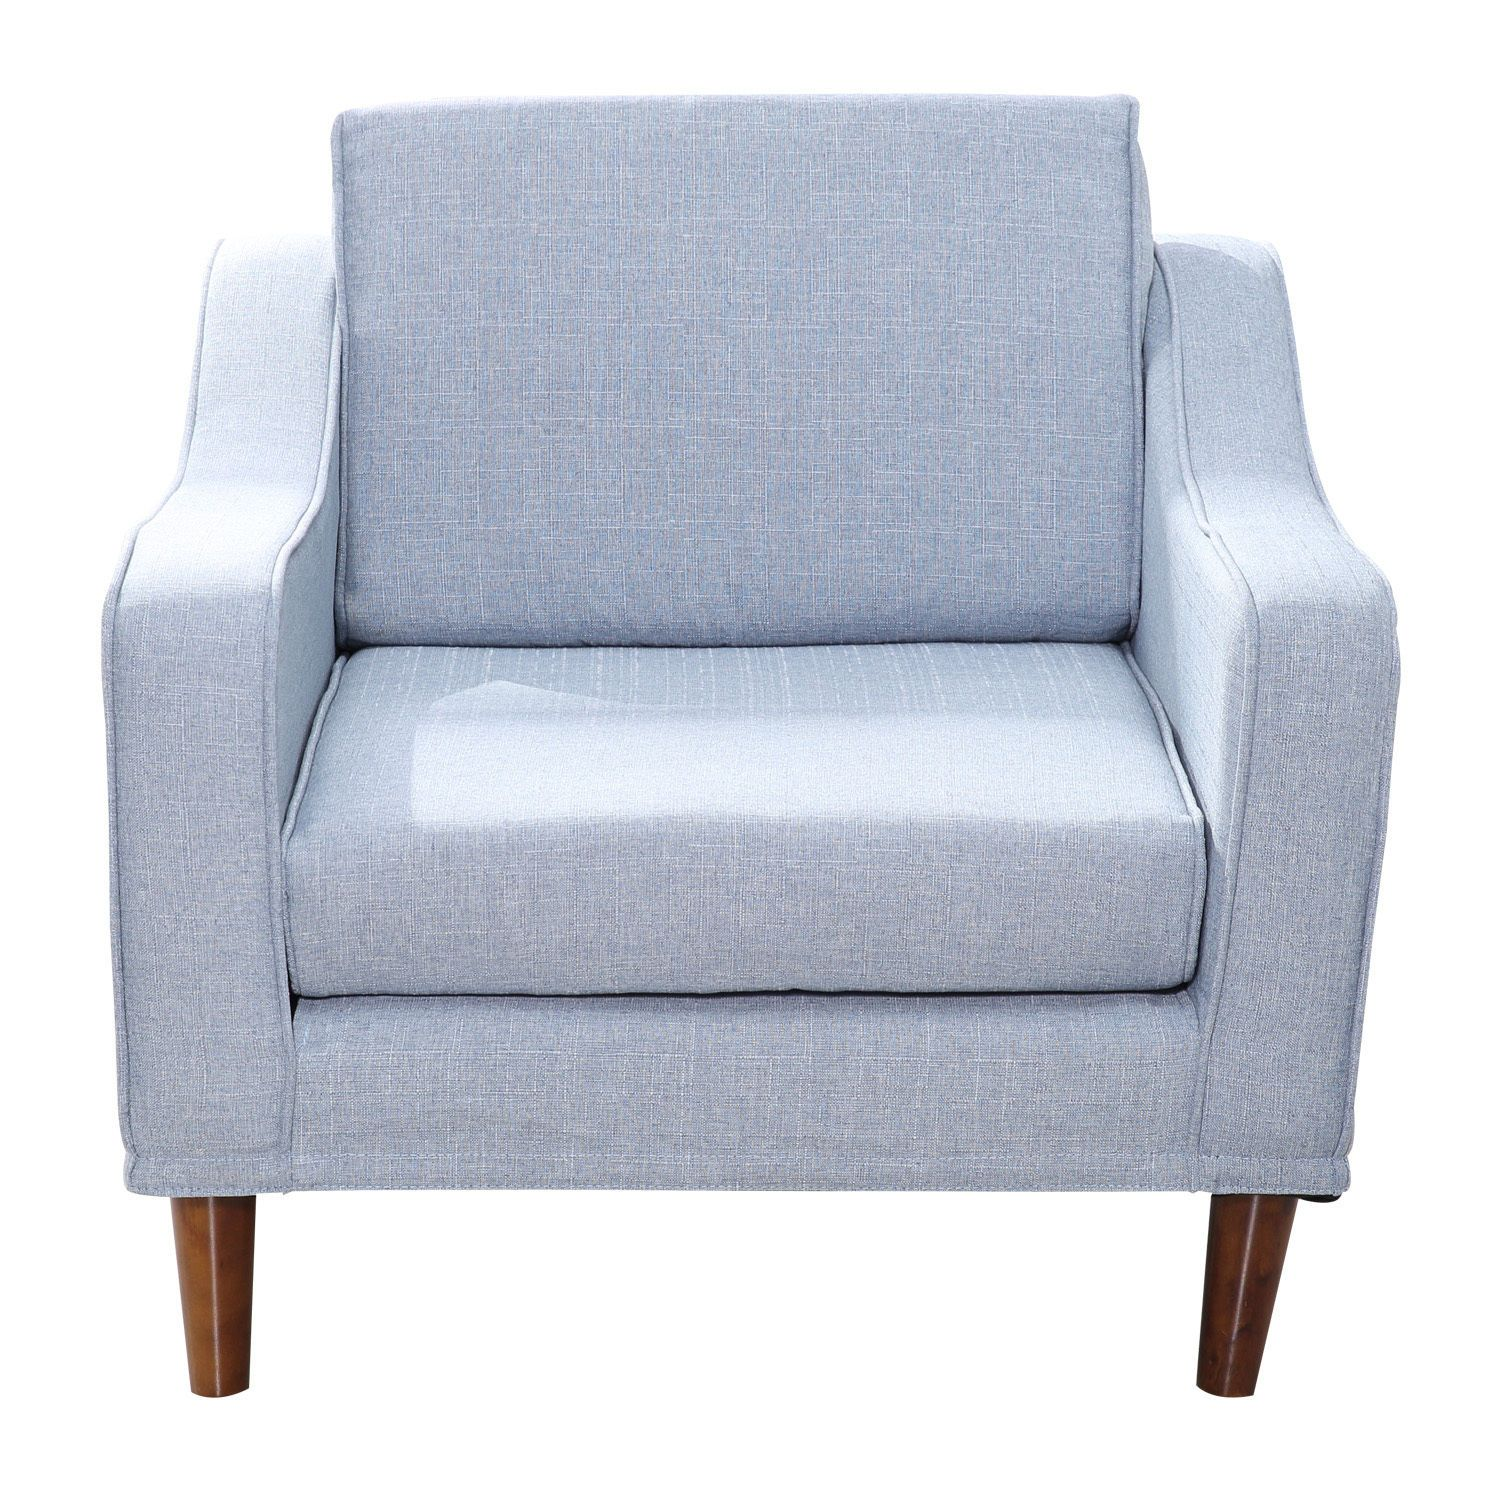 Sofa Arm Chair Single Seat Wood Chaise Linen Couch Cover Lounge Detachable Home | Armchair furniture